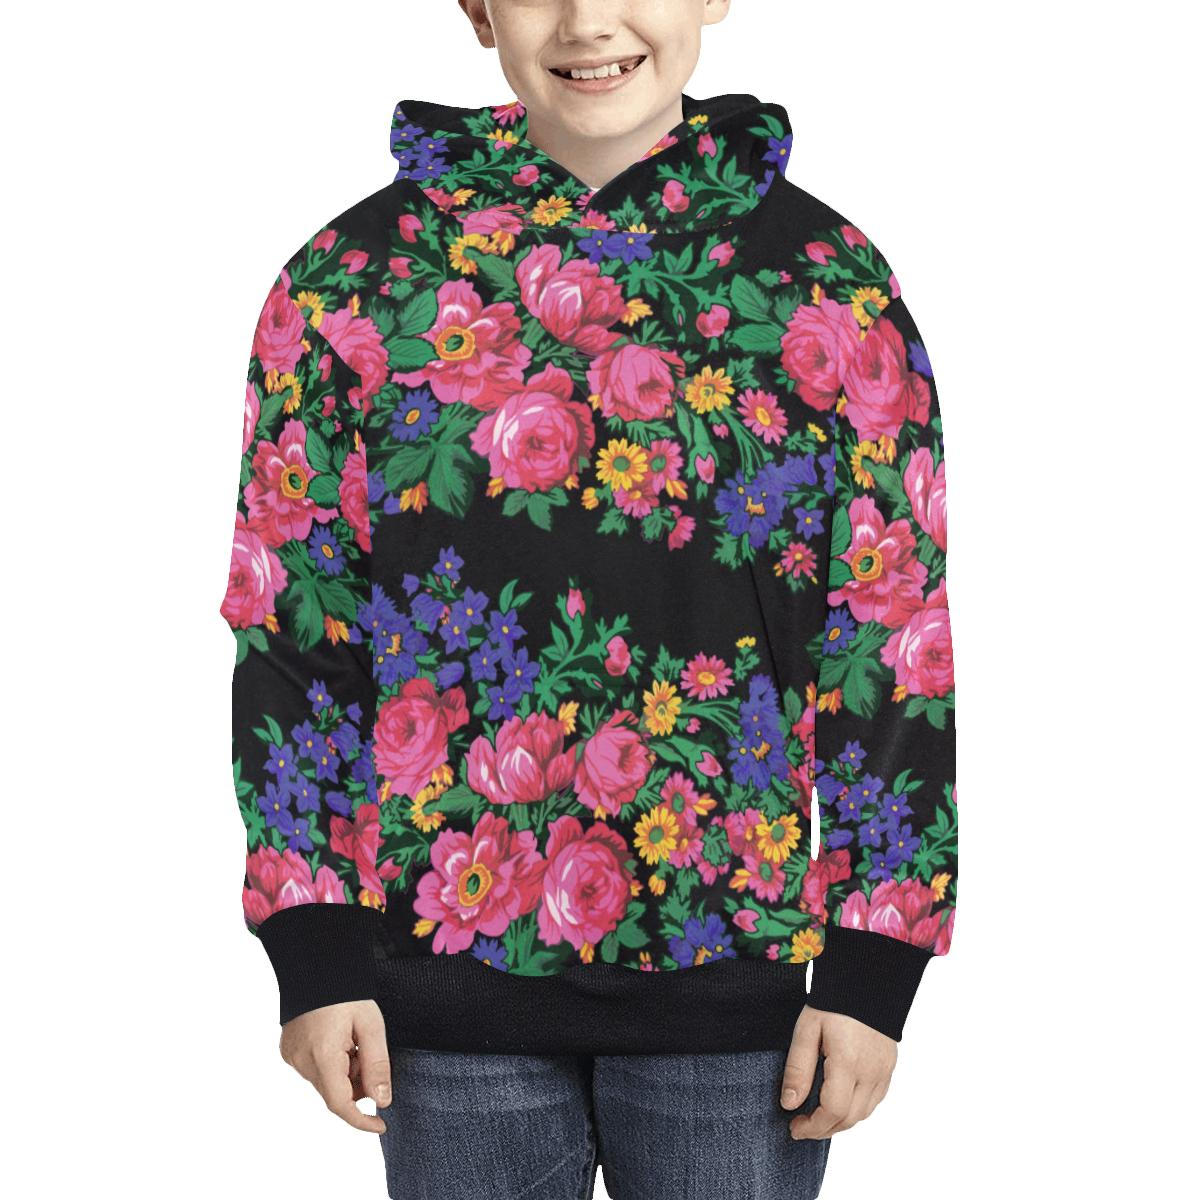 Kokum's Revenge Black Kids' All Over Print Hoodie (Model H38) Kids' AOP Hoodie (H38) e-joyer